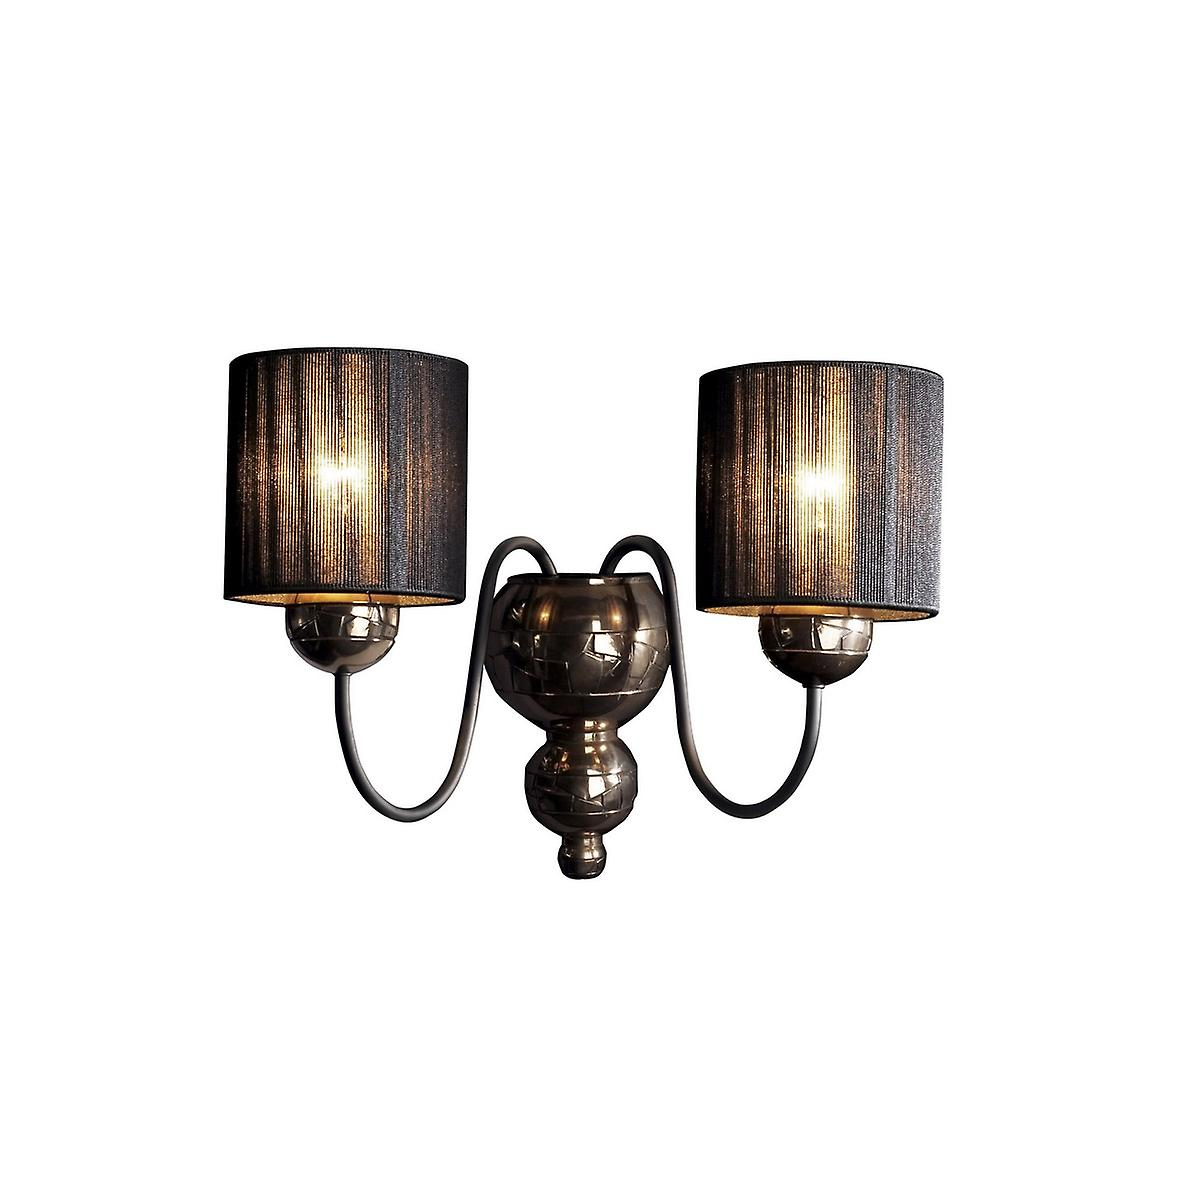 David Hunt GAR0963 Garbo Double Wall Bracket In A Bronze Finish With Black String Shades